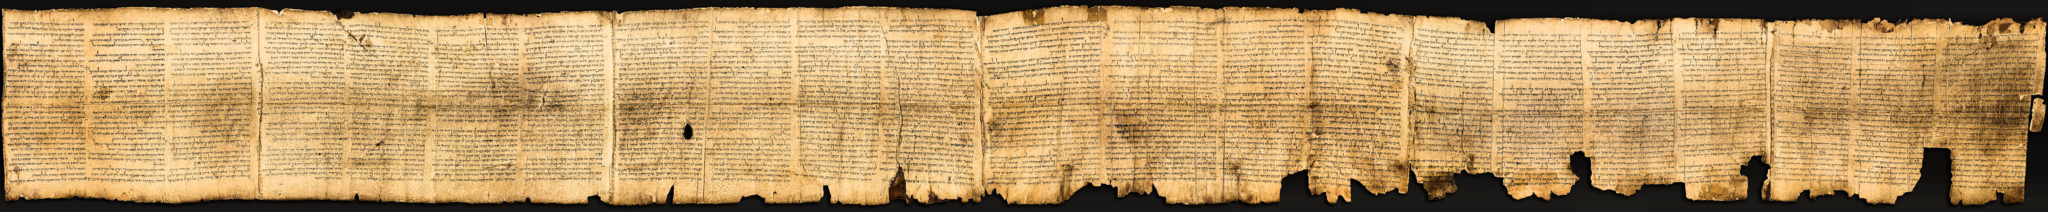 The Prophecy of Isaiah from the Dead Sea Scrolls